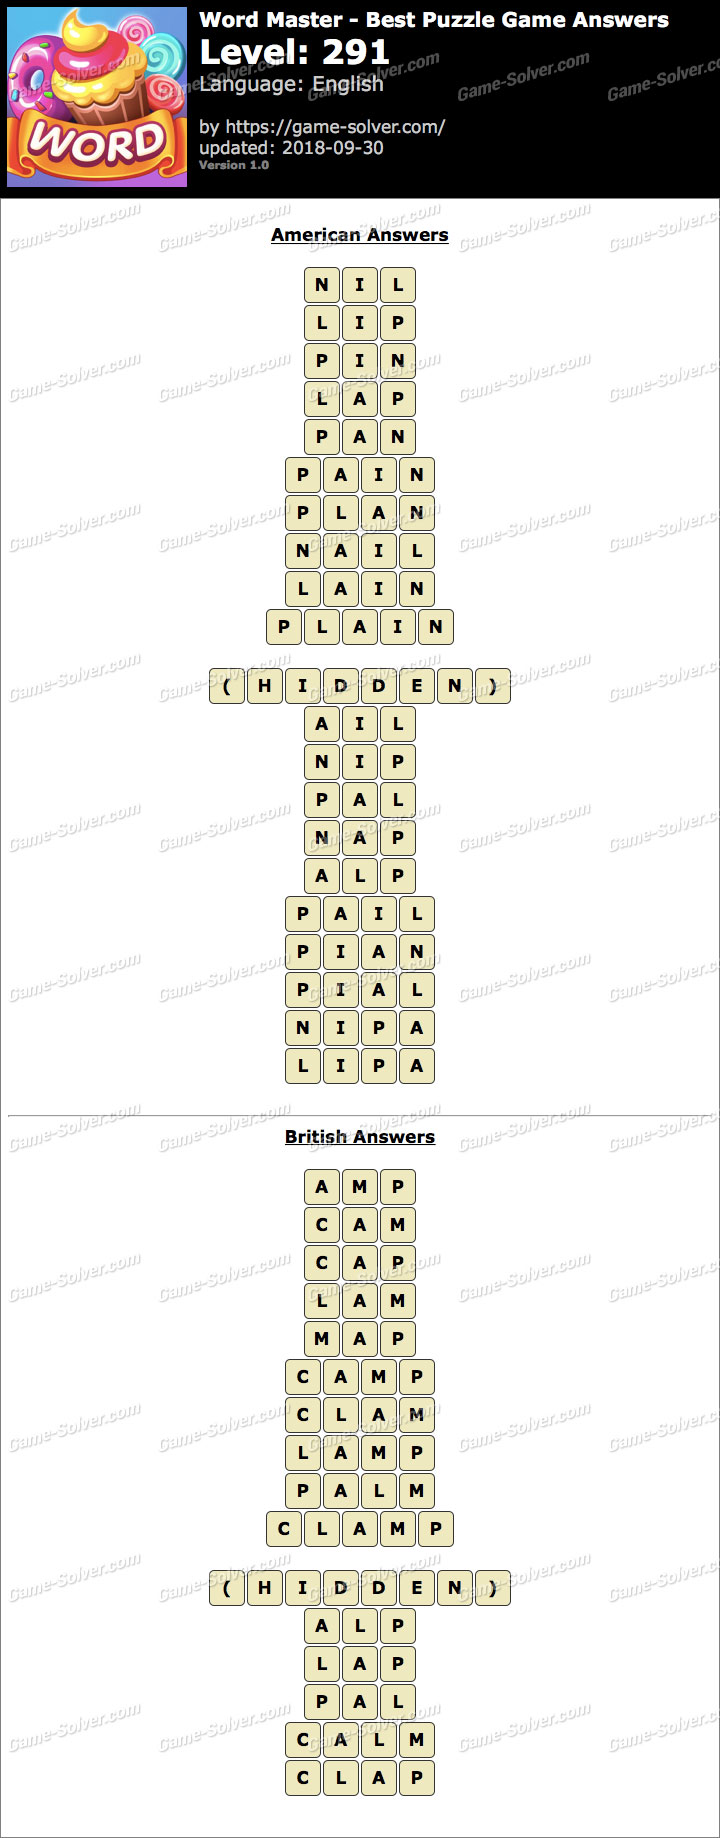 Word Master-Best Puzzle Game Level 291 Answers